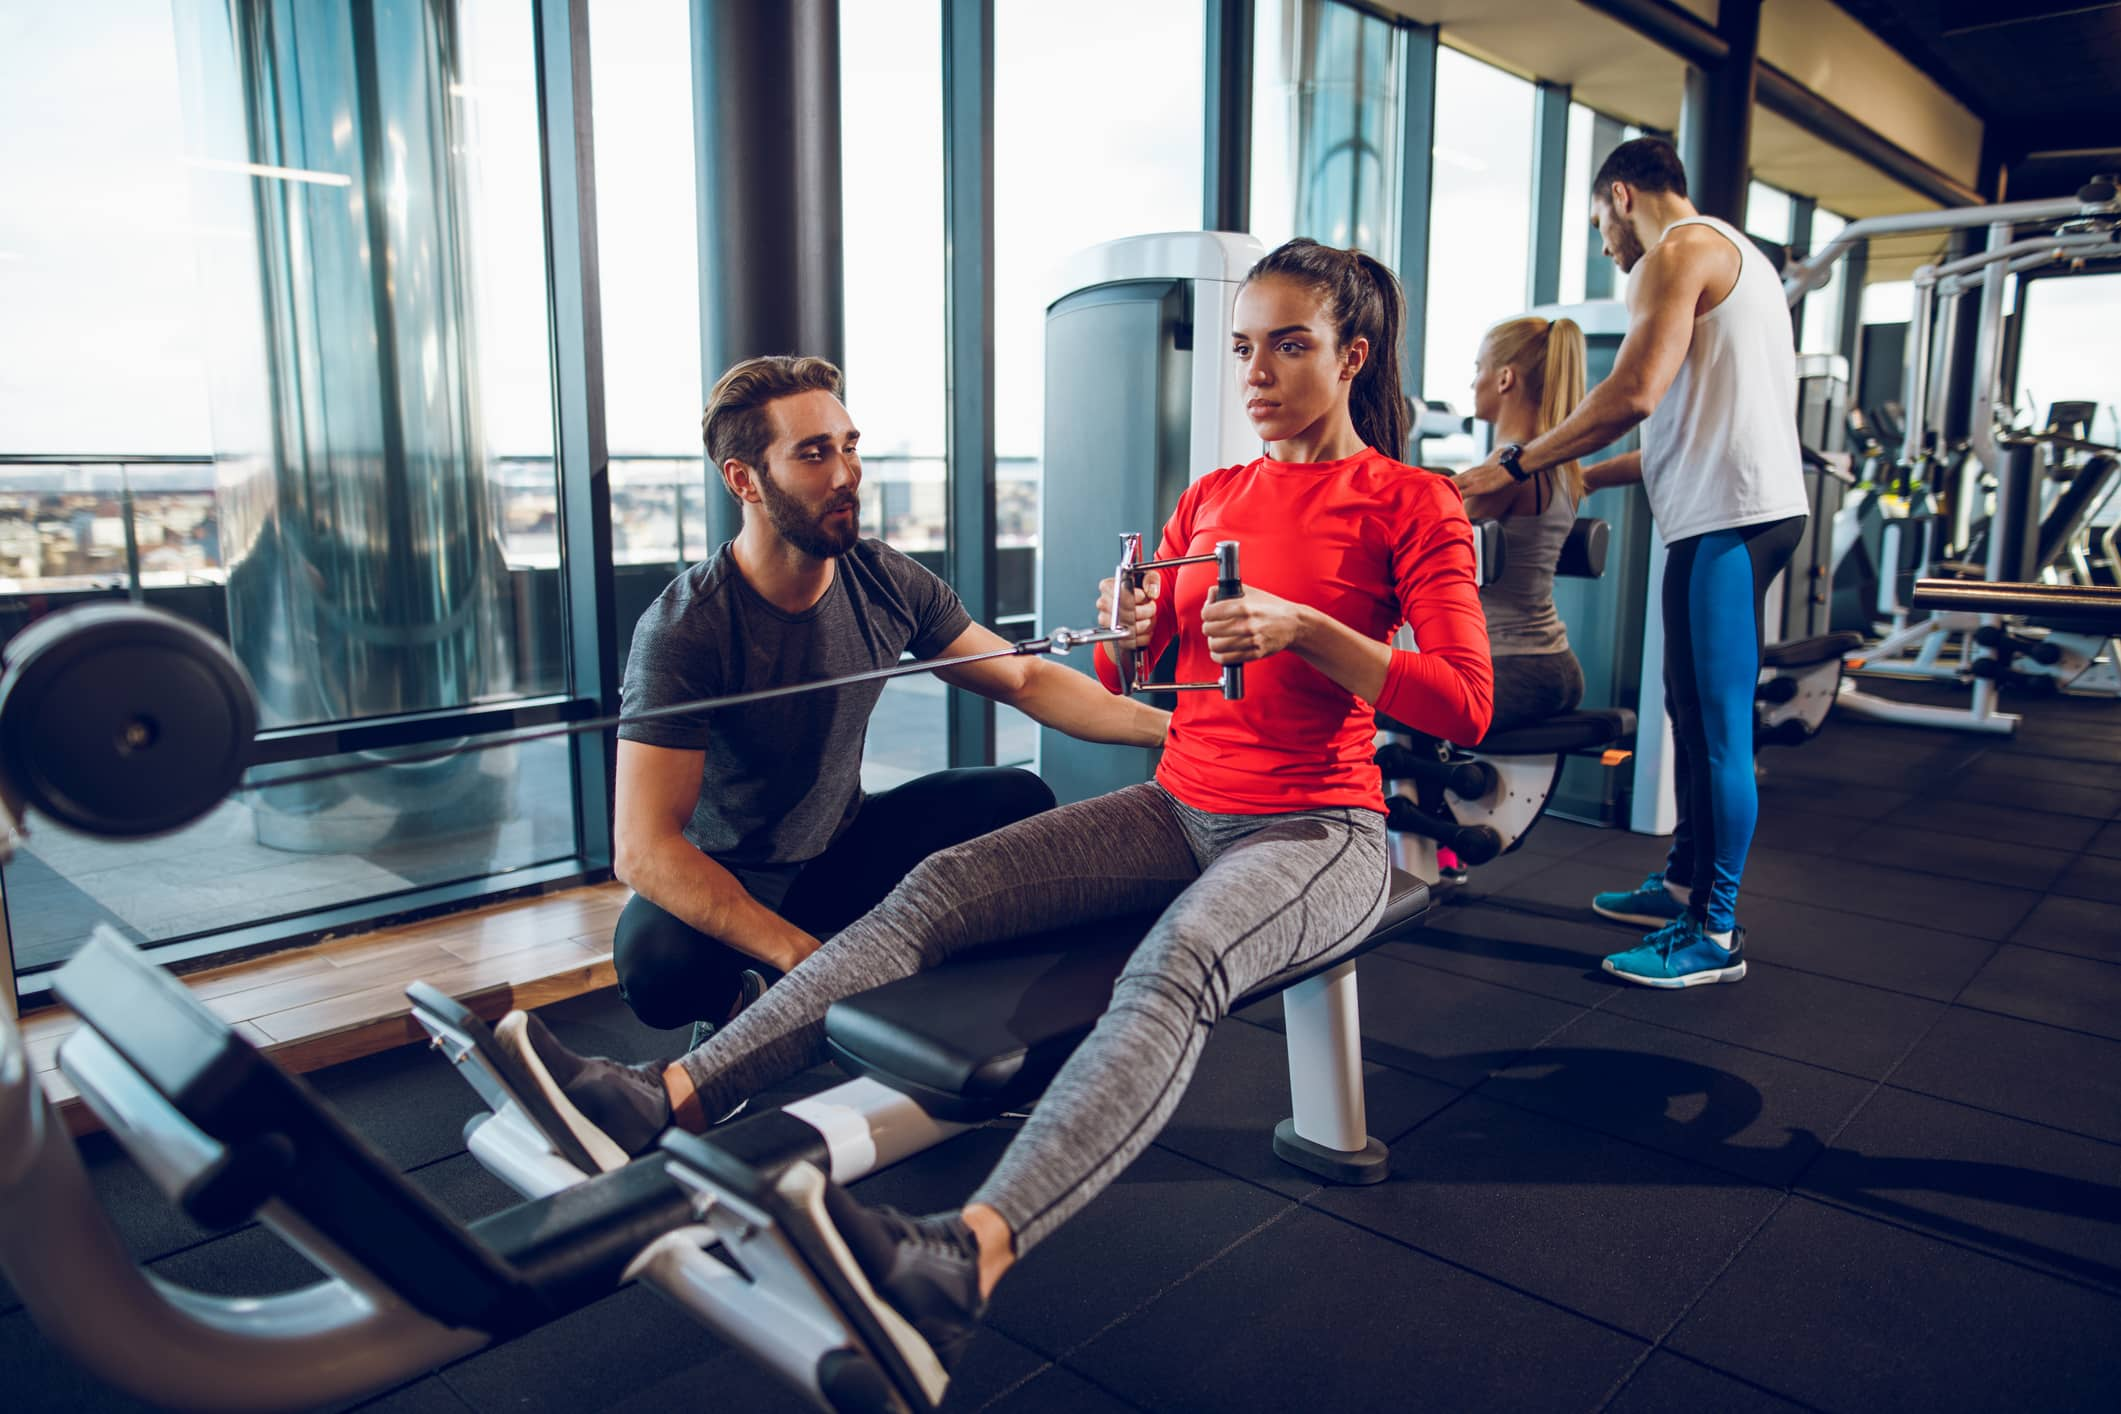 Workout with personal trainer on rowing machine at gym